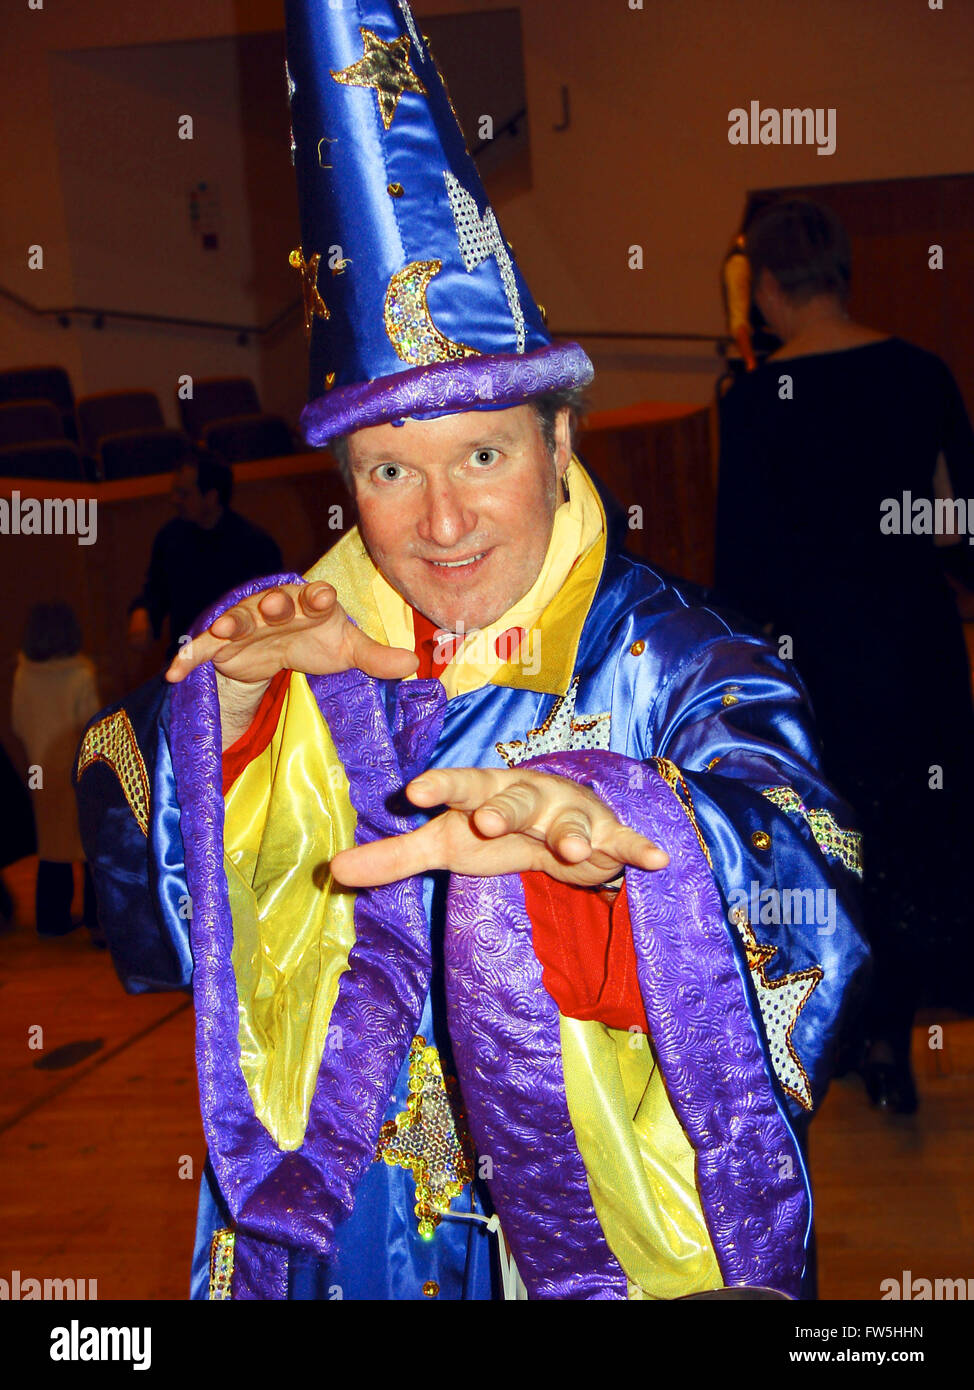 Alistair Malloy, as wizard, introducing children's concert, compère, presenter, percussionisst, BBC Concert - Stock Image